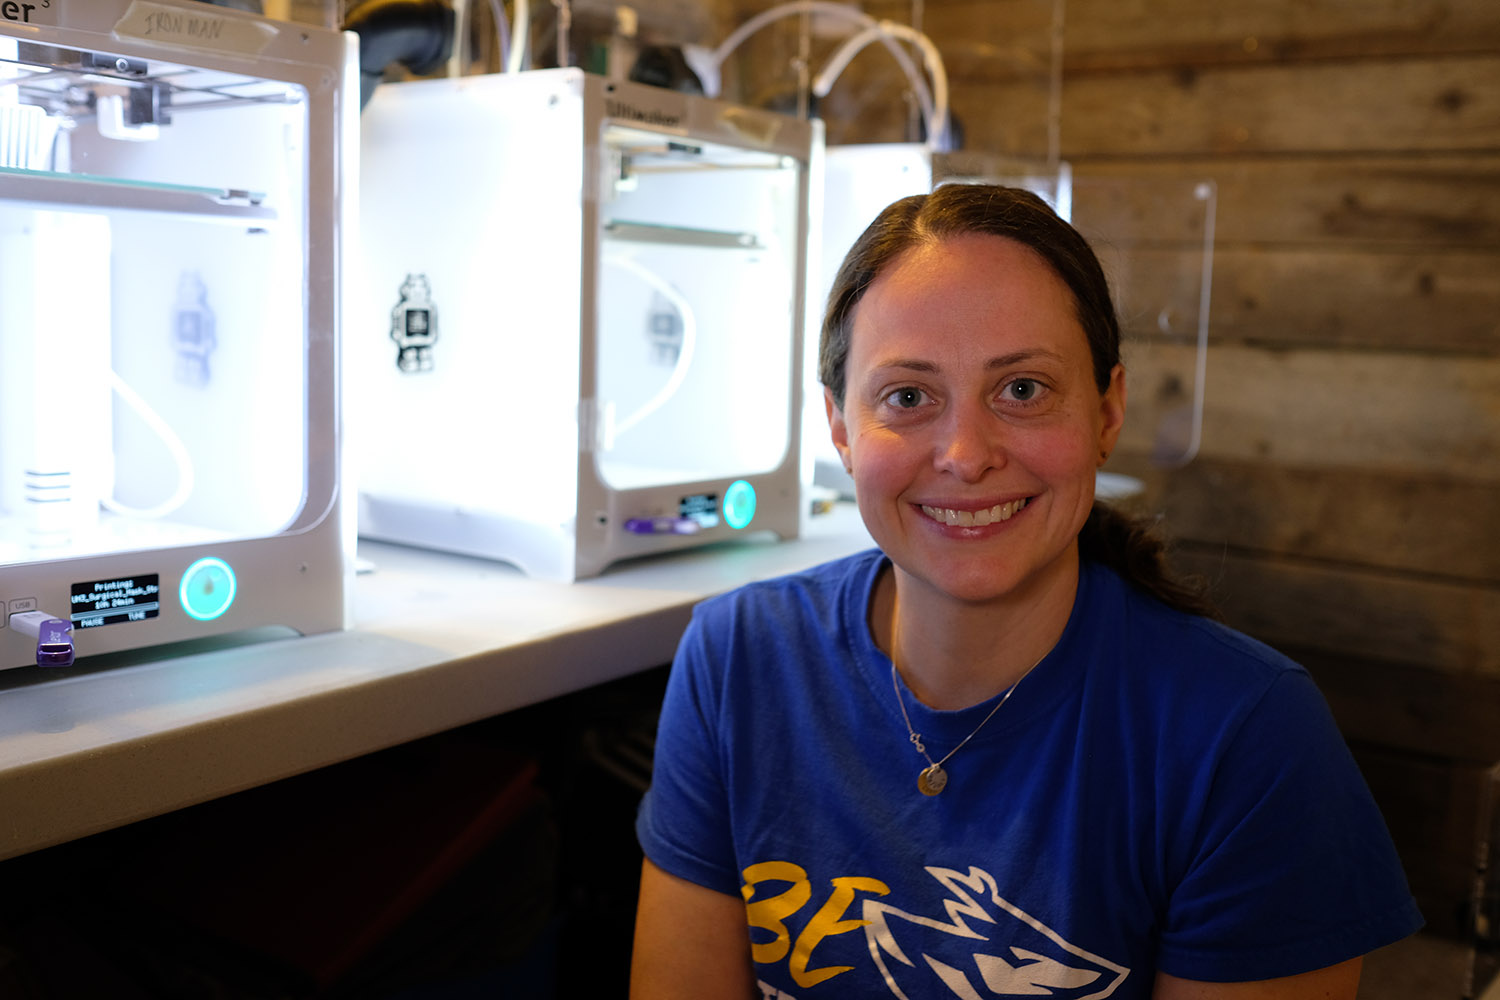 Associate chemistry professor Kristy Kounovsky-Shafer is using 3D printers from her UNK research lab to produce protective equipment for health care workers and emergency responders. (Courtesy photos)